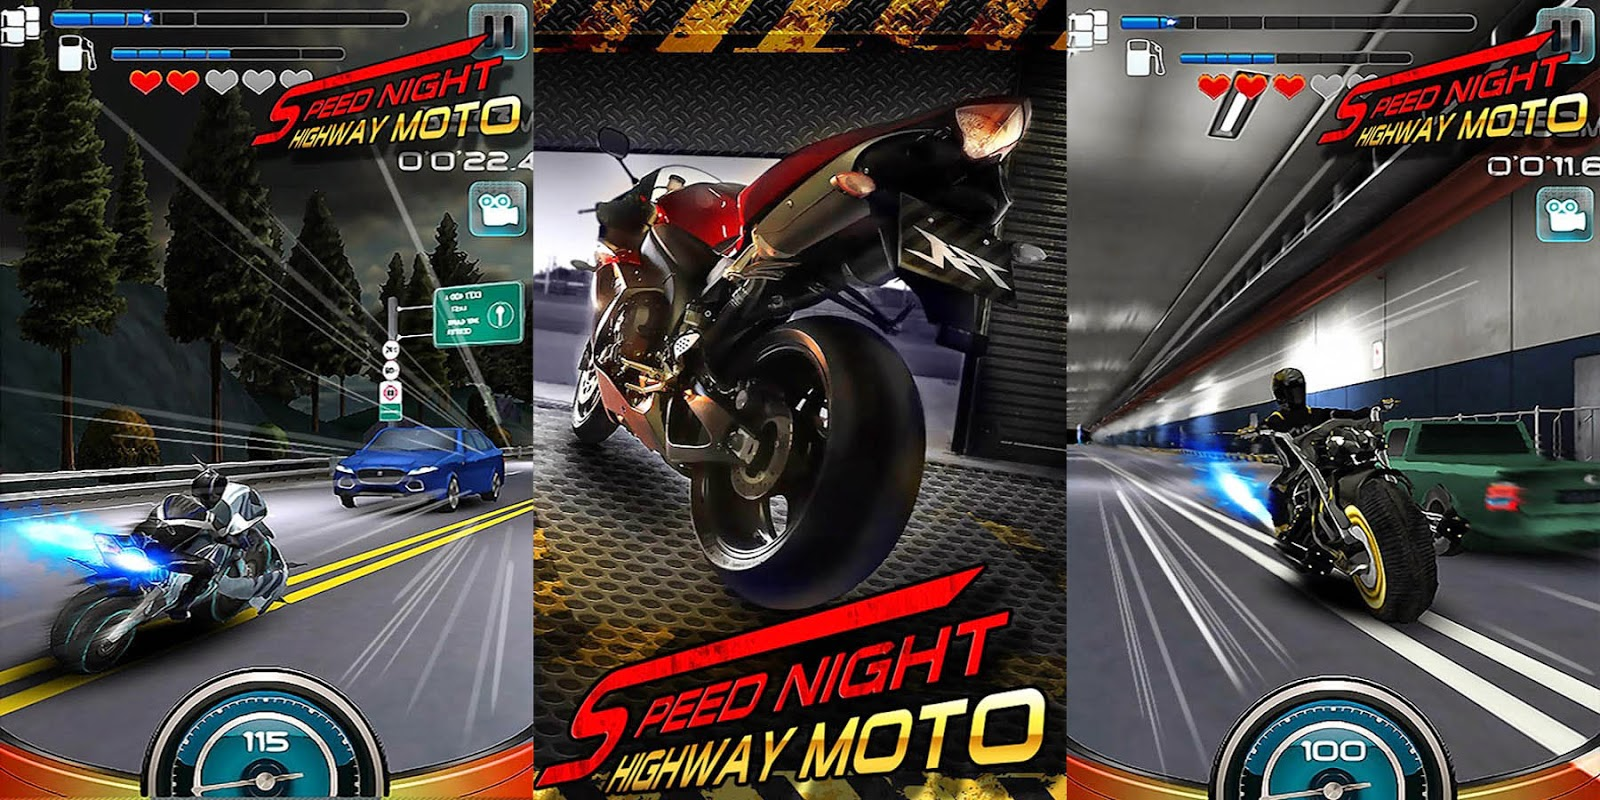 Speed Night Highway MOTO Gameplay Android